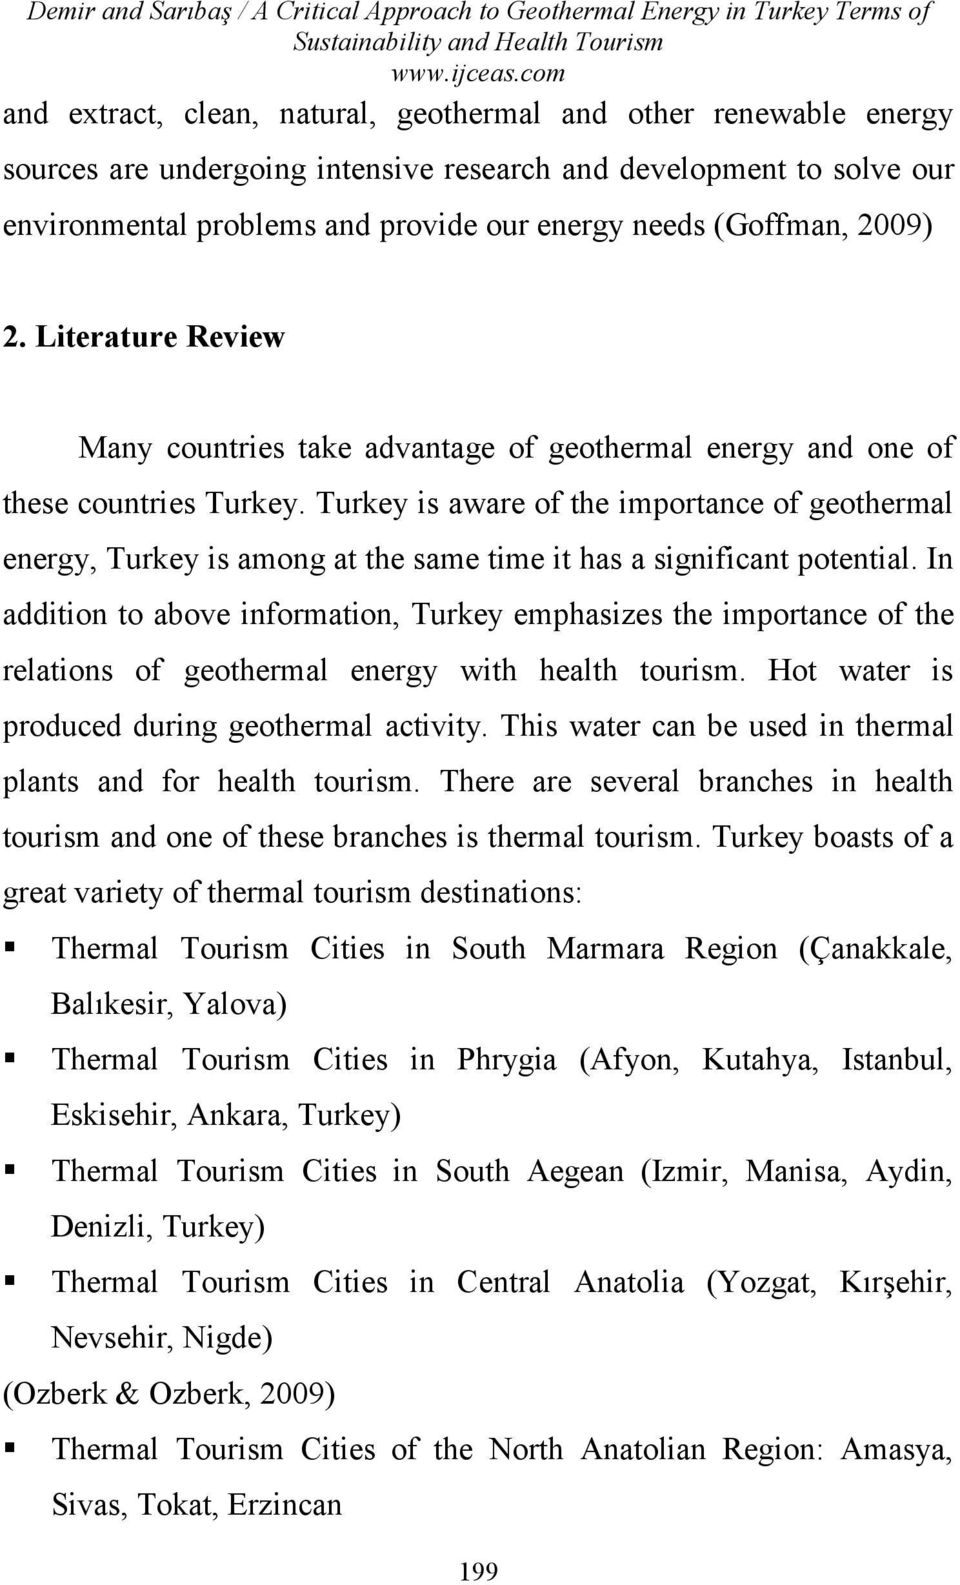 (Goffman, 2009) 2. Literature Review Many countries take advantage of geothermal energy and one of these countries Turkey.